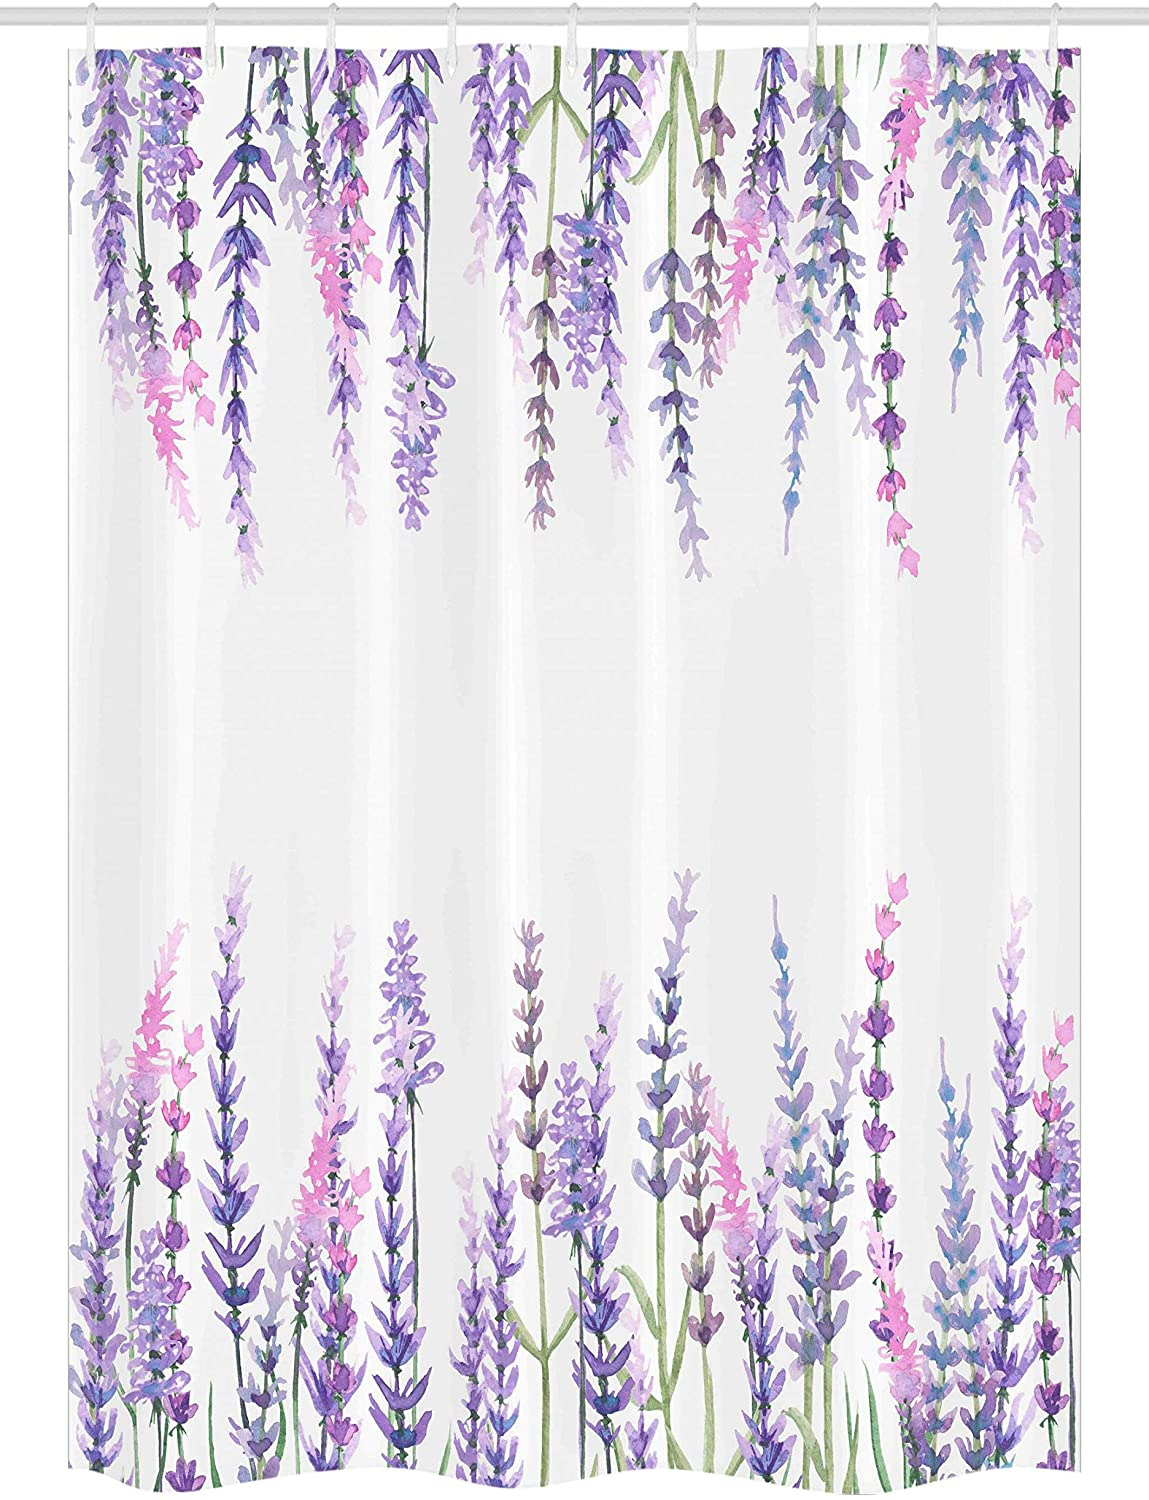 Lavender Bathroom Decor Lovely Ambesonne Purple Stall Shower Curtain Lavender Plants Aromatic Evergreen Shrub Of Mint Family Nature Oil Country Style Print Fabric Bathroom Decor